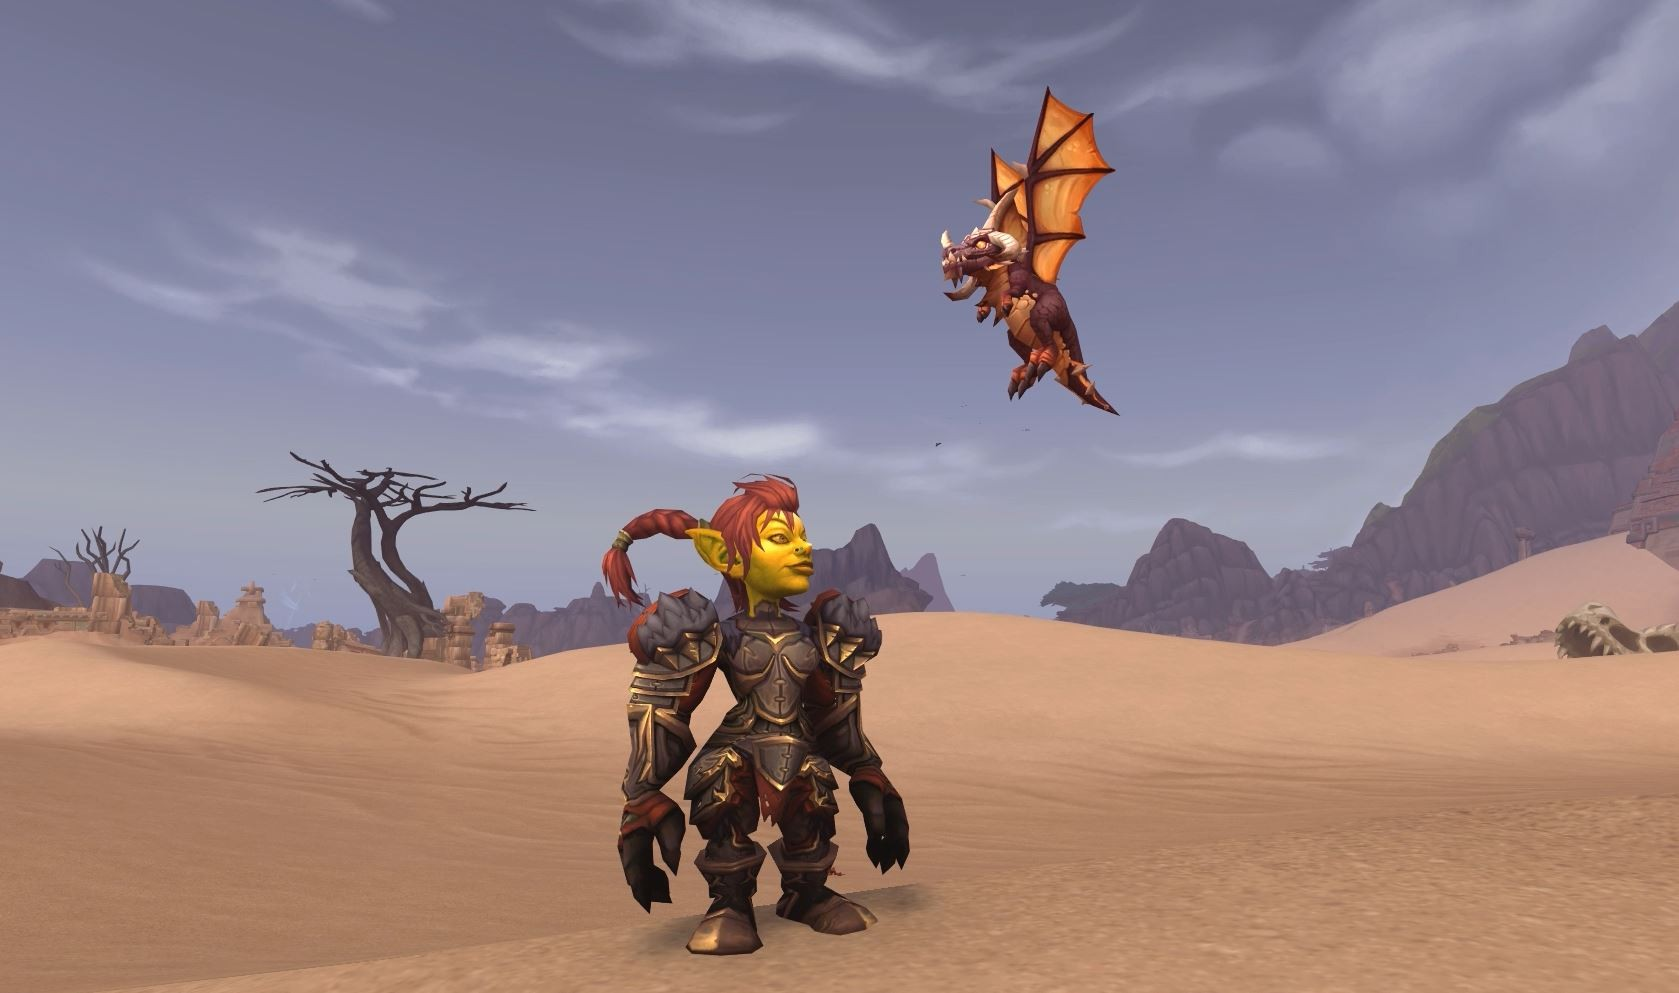 World of Warcraft celebrates with 15th Anniversary